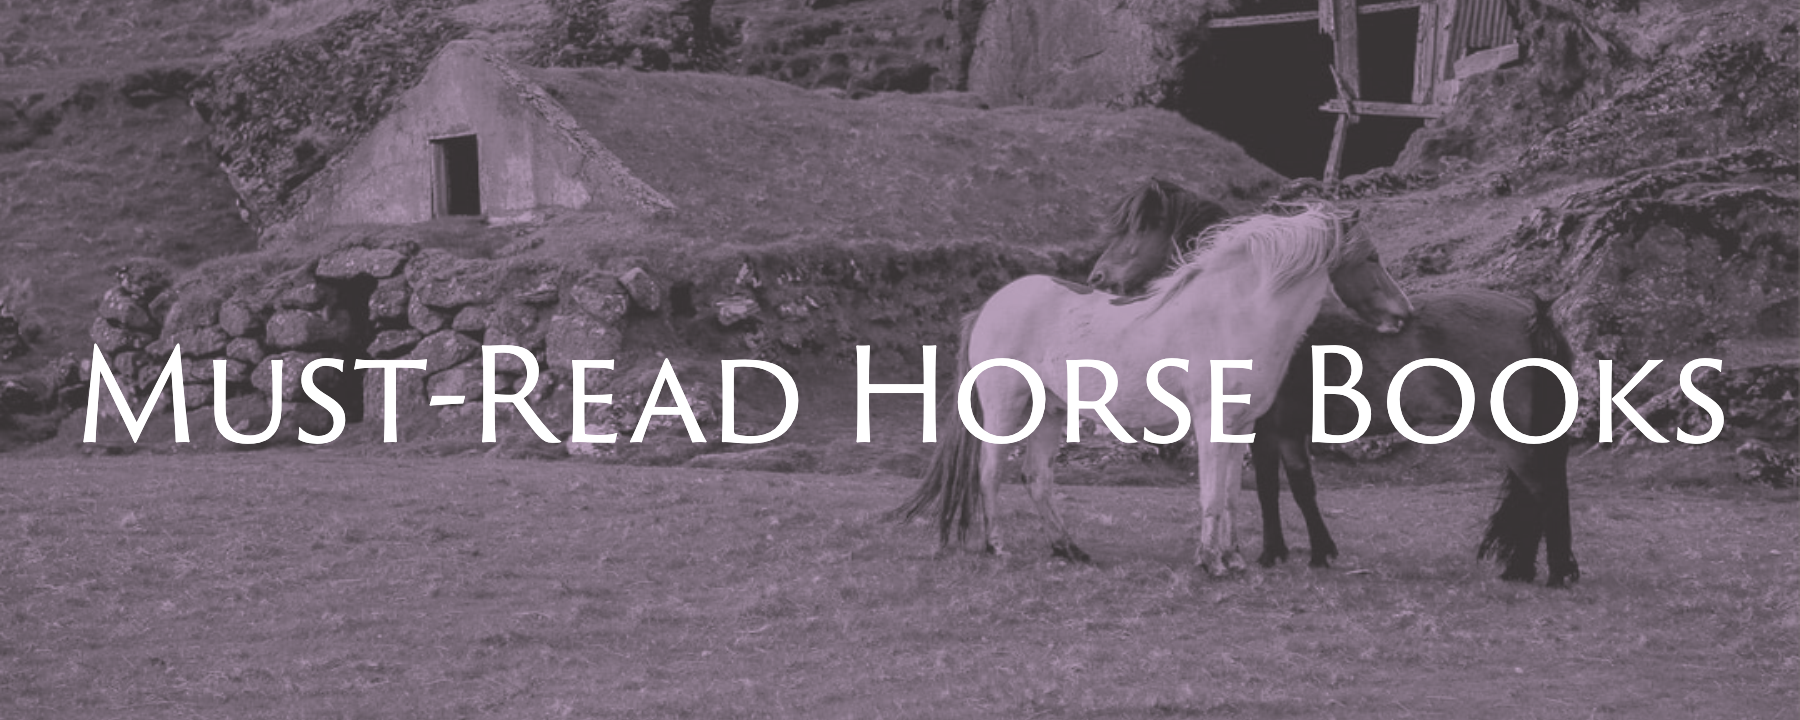 Must read horse books